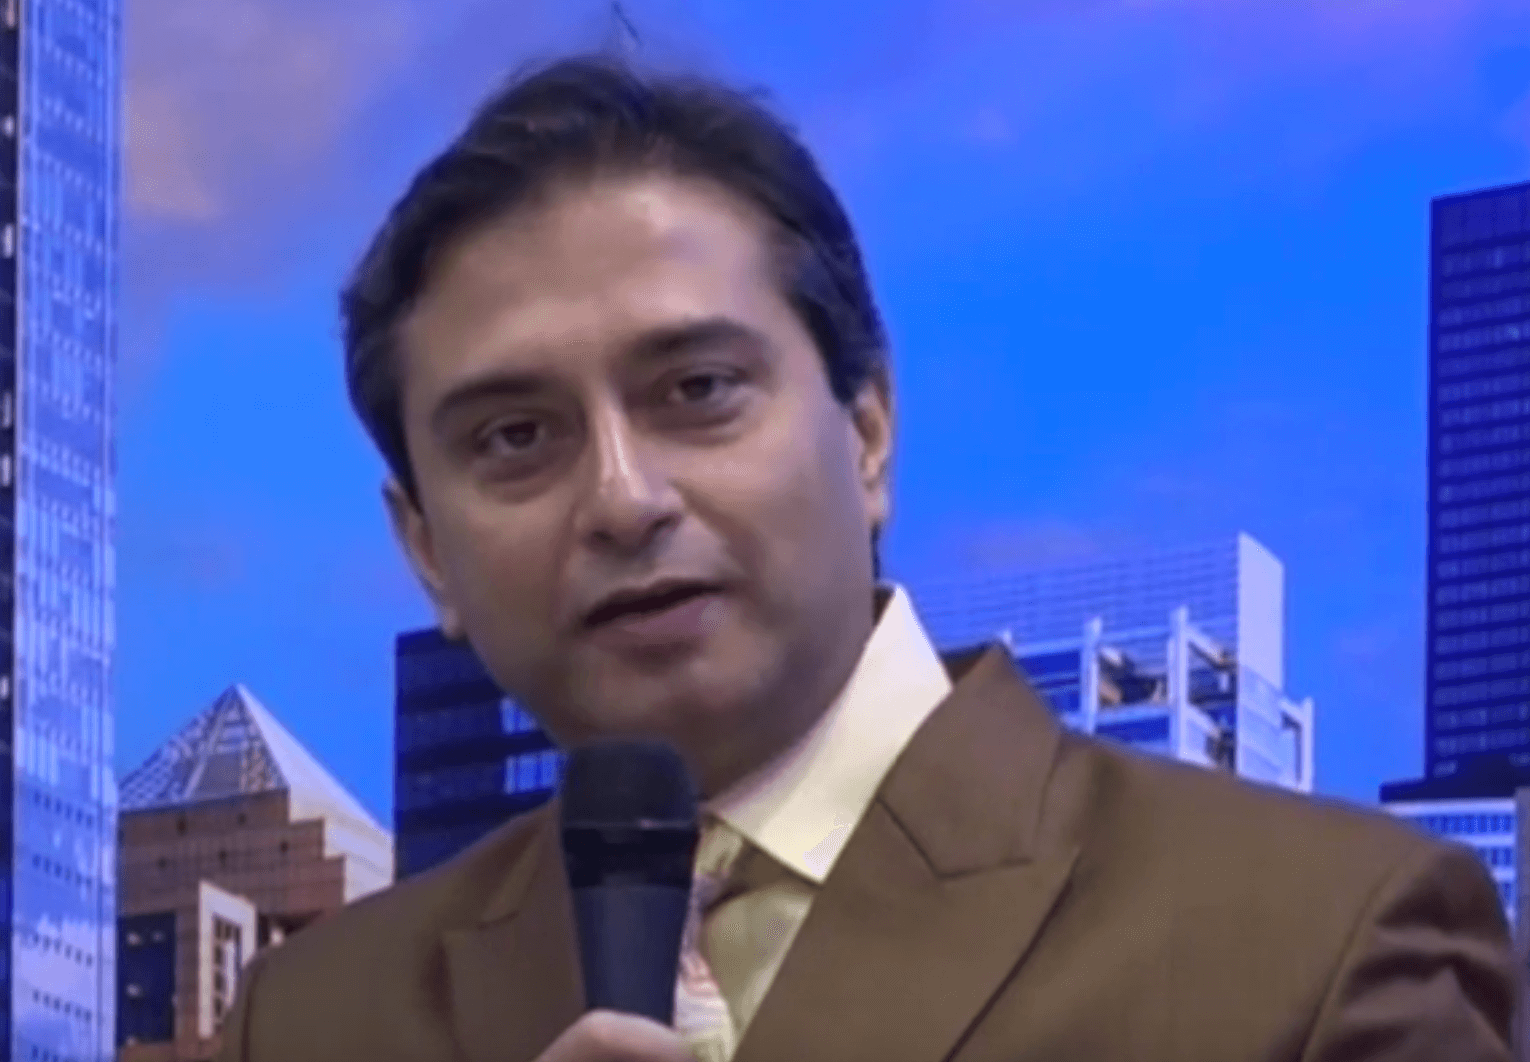 Corneal Scars Corrected: EYEWORLD Interview Dr. Gulani at American Academy Conference In Chicago